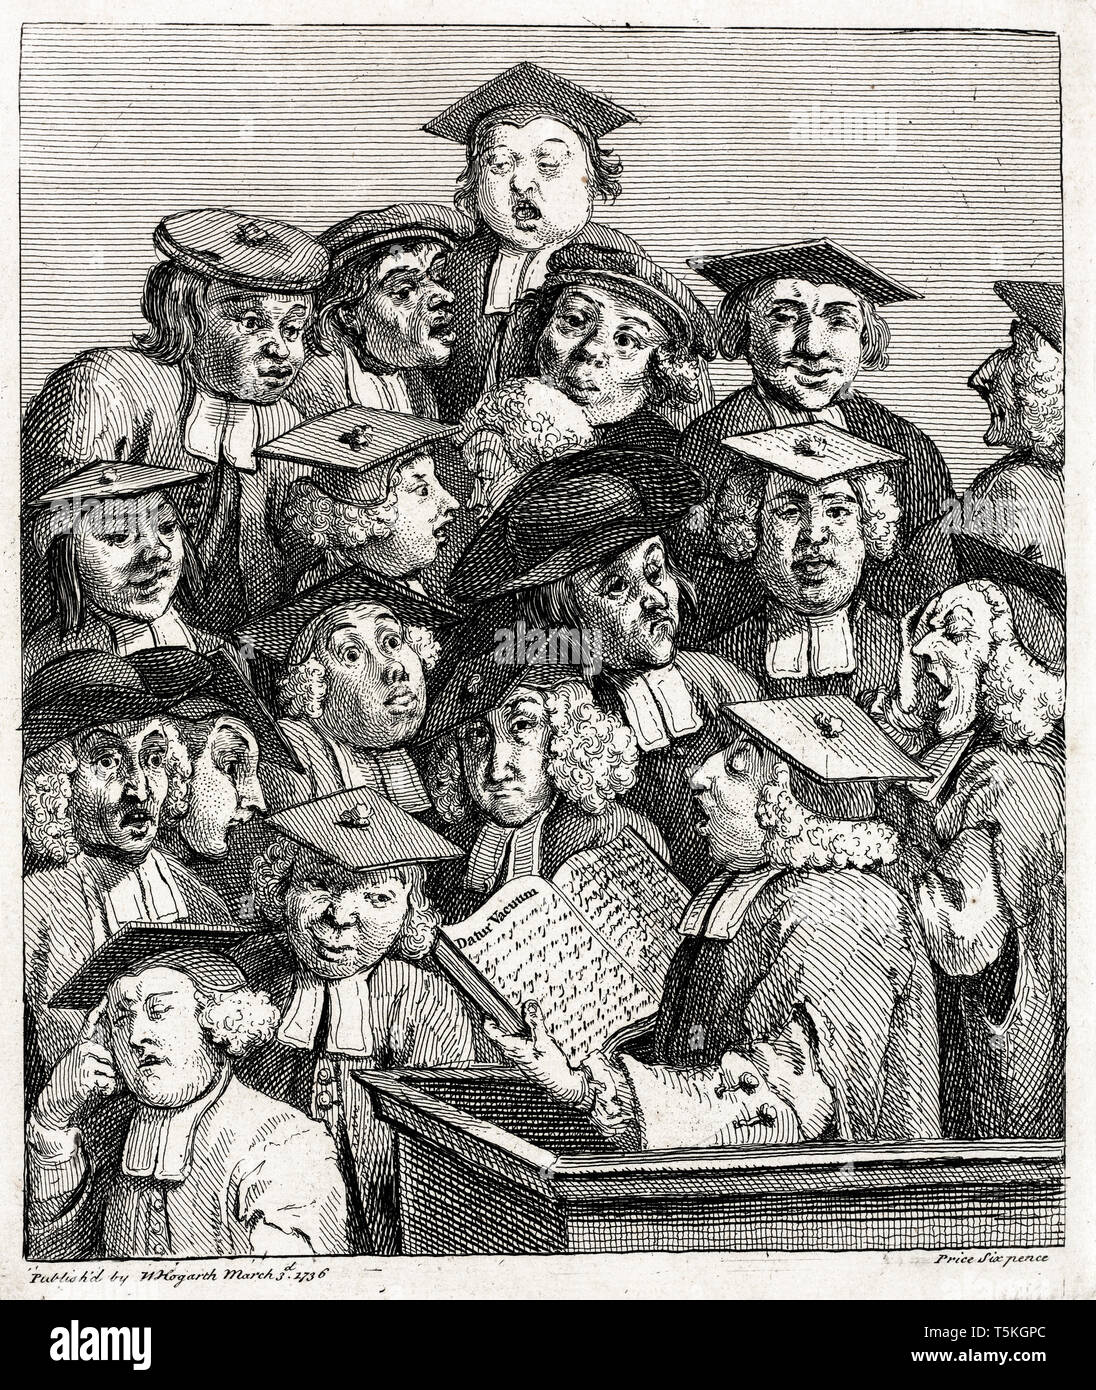 William Hogarth, Scholars at a Lecture, engraving, c. 1736 - Stock Image